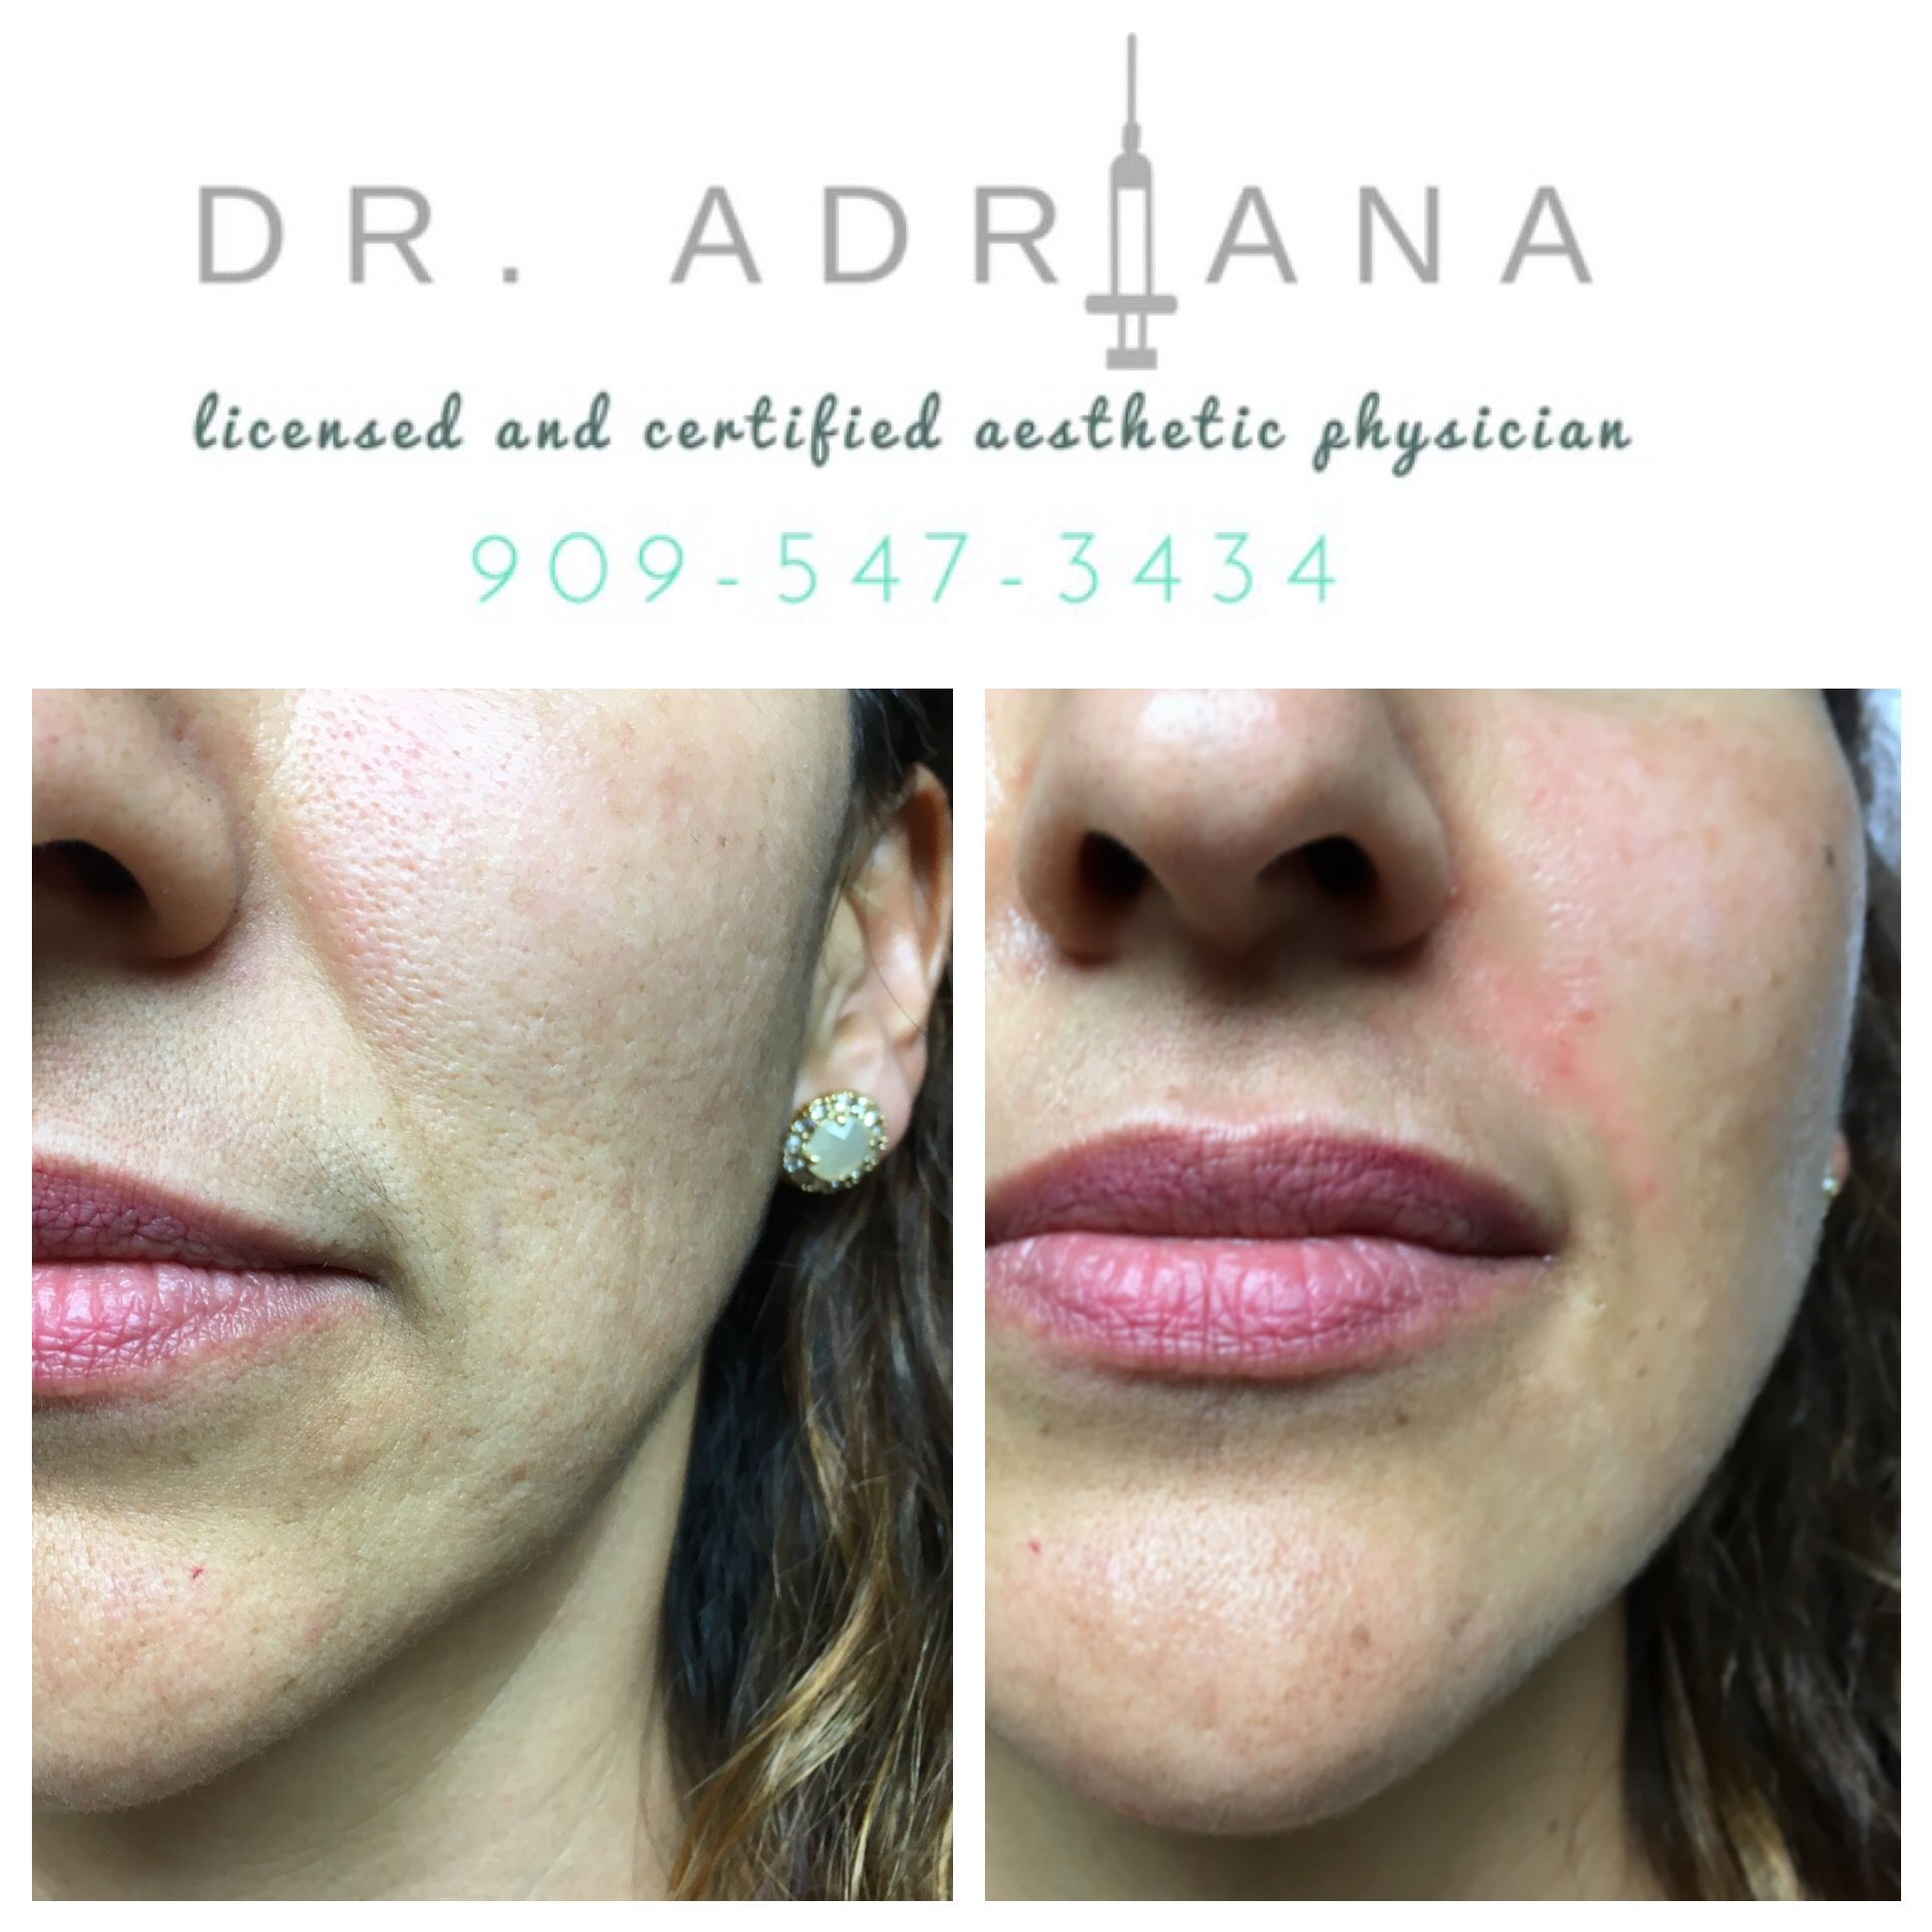 This patient wanted her nasolabial folds, also known as the